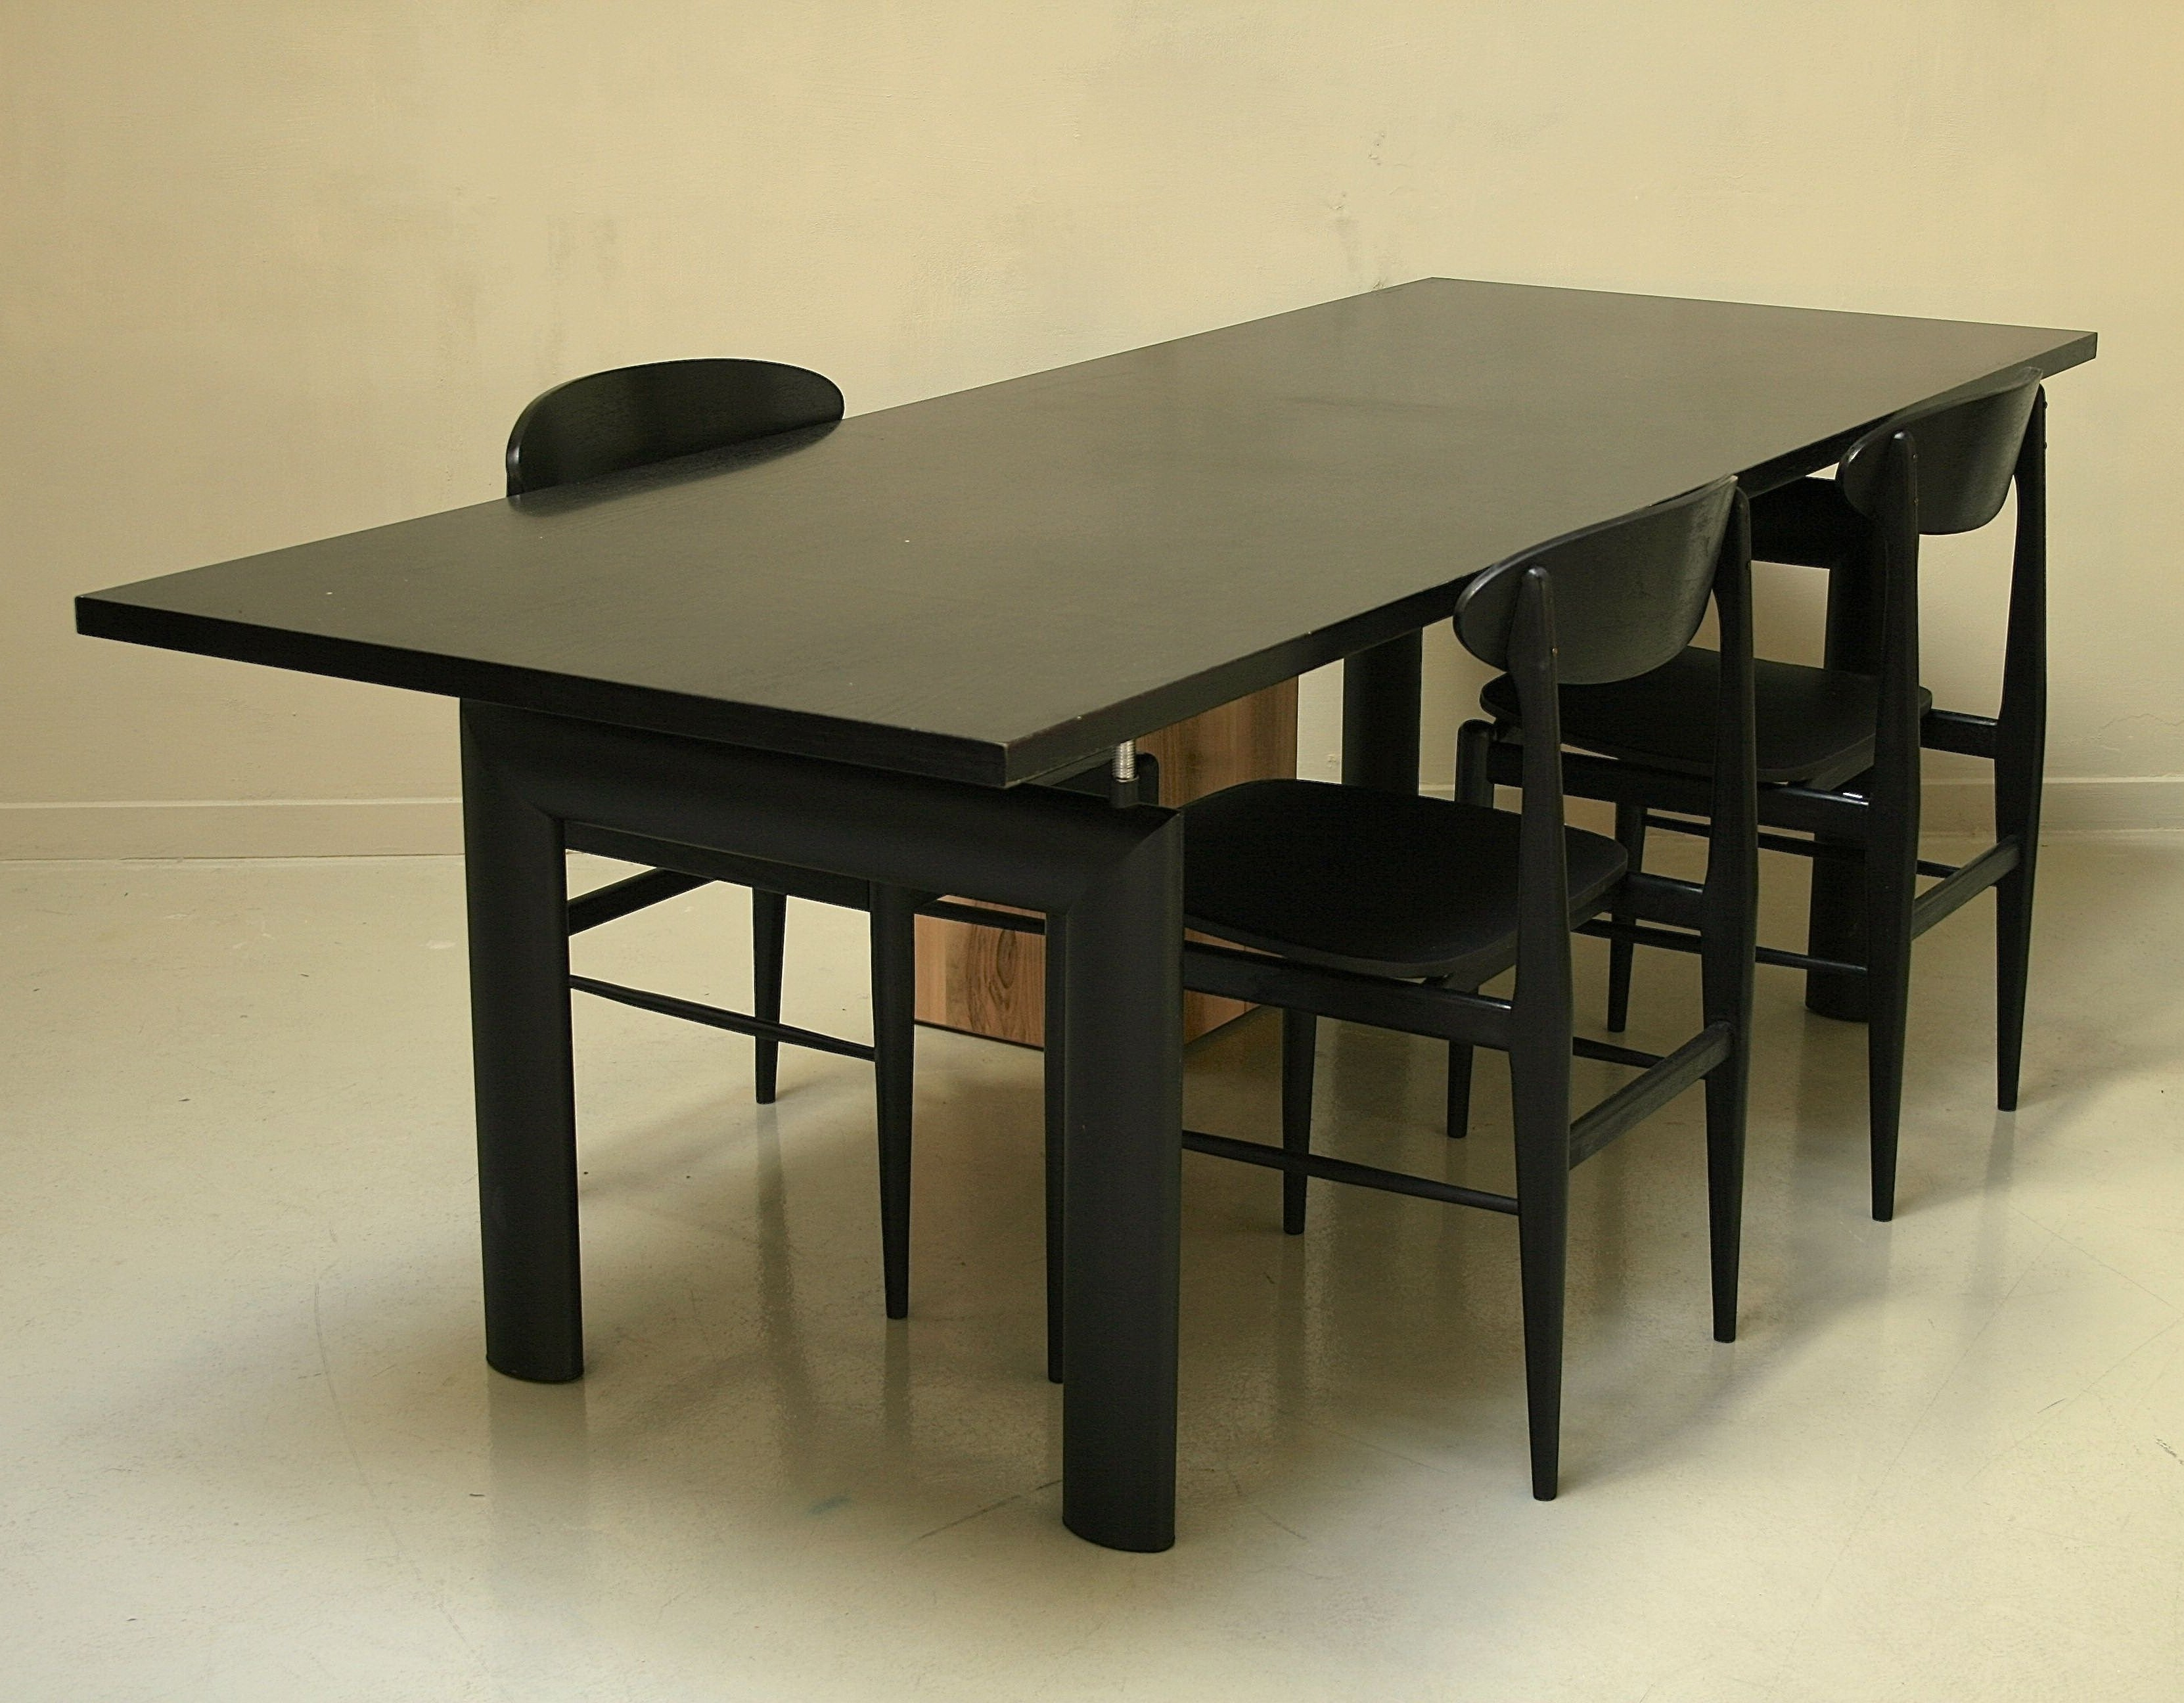 dining table by le corbusier for cassina 1950s 59775. Black Bedroom Furniture Sets. Home Design Ideas